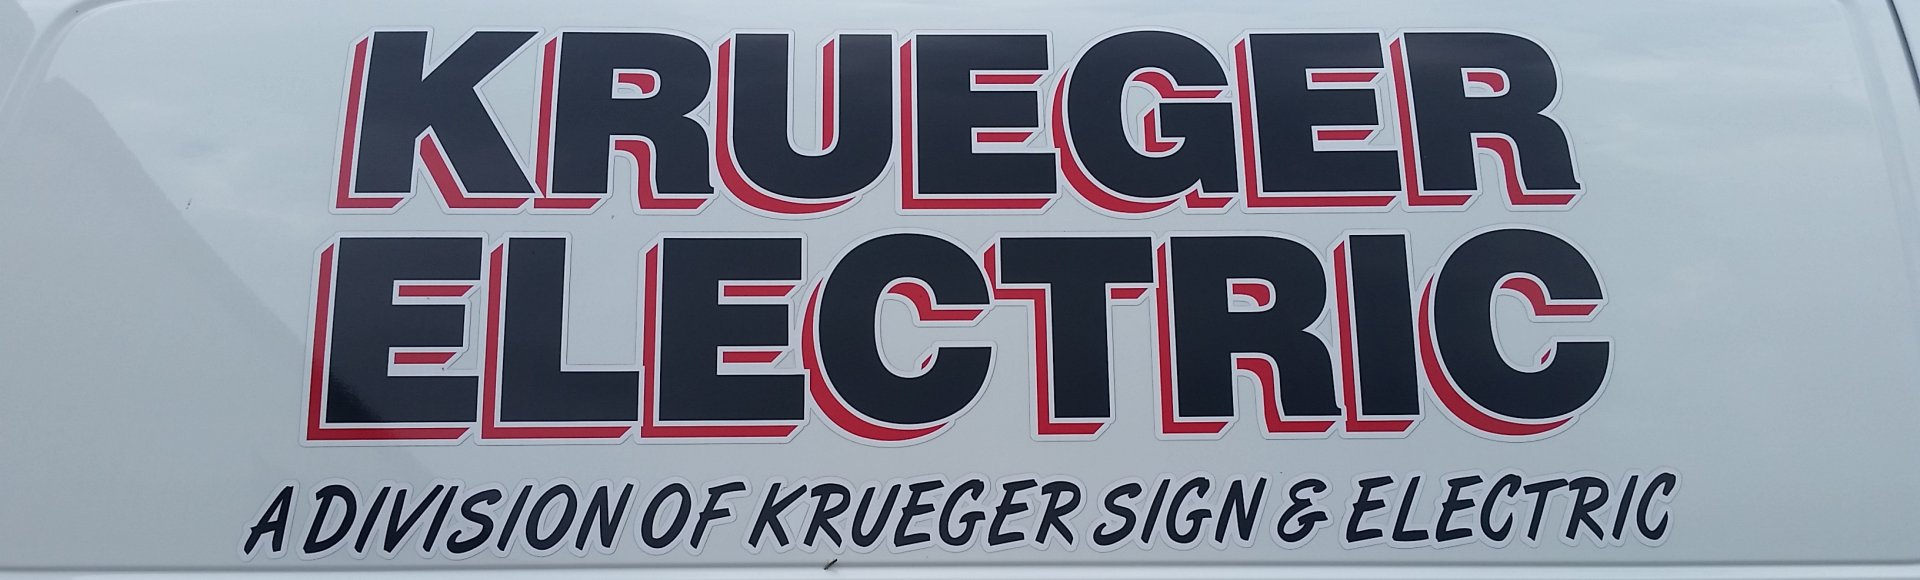 Krueger Electric